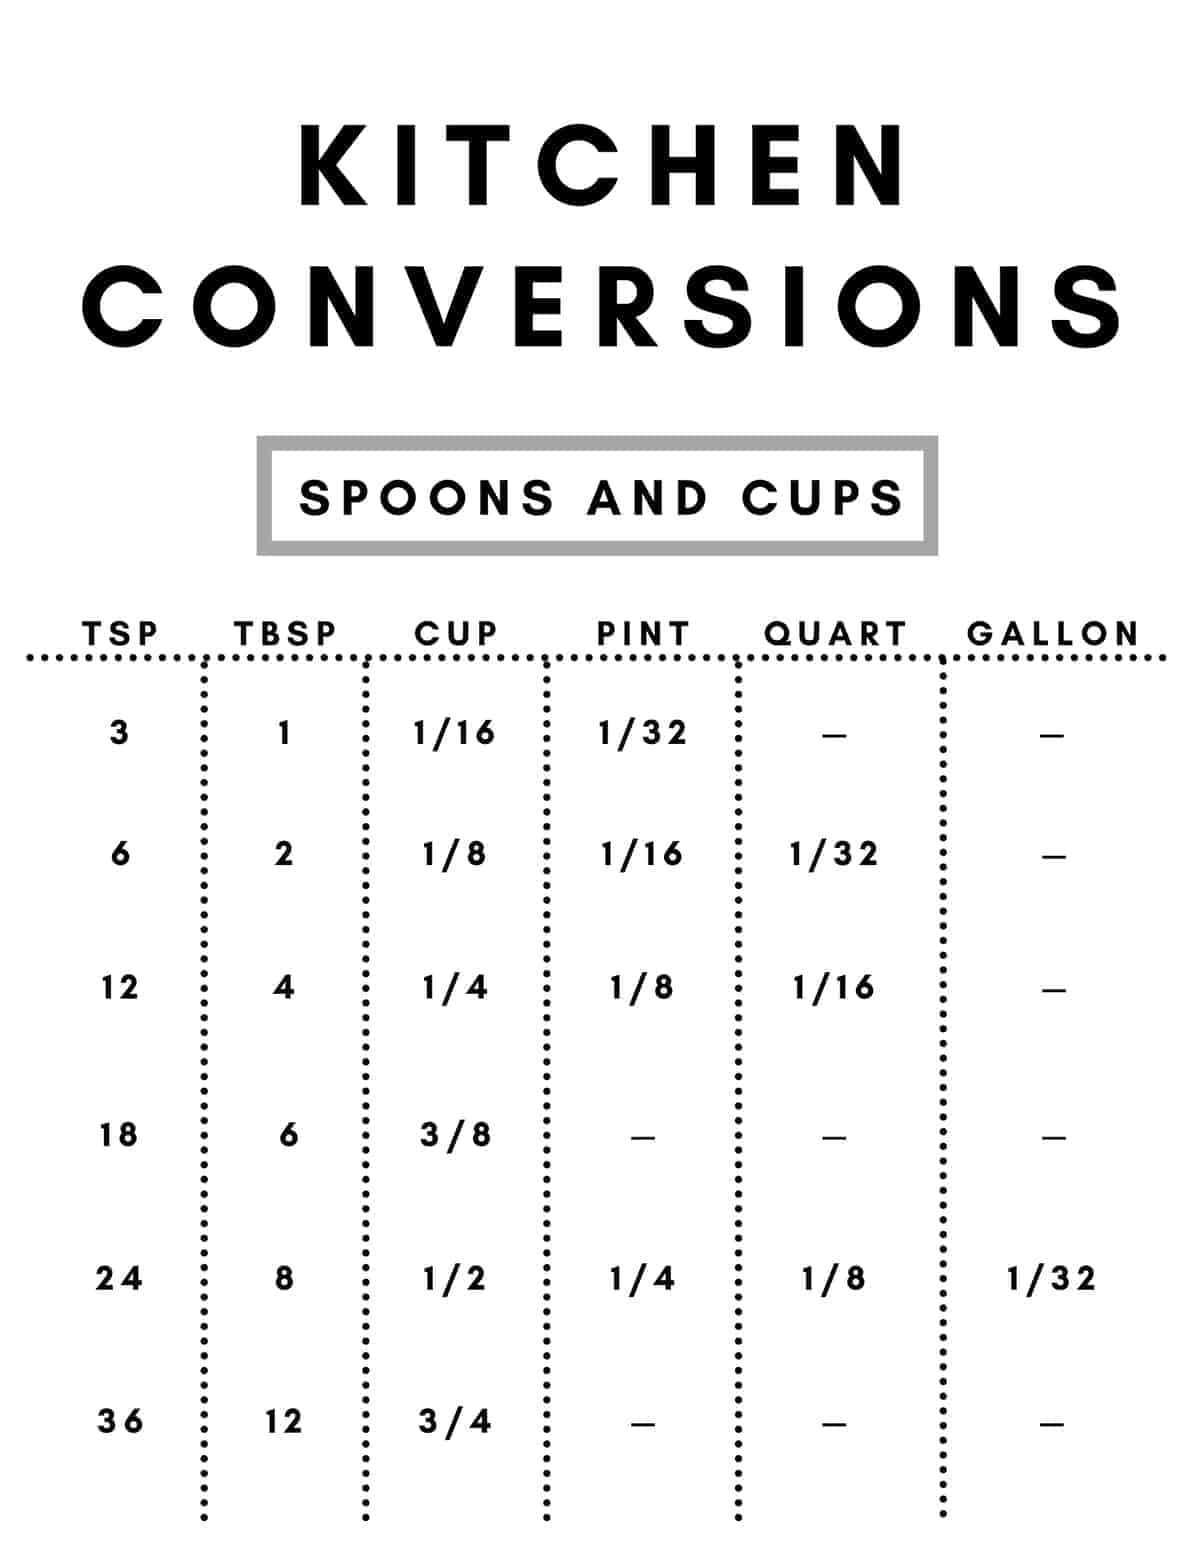 A measuring spoon and cup kitchen conversion chart for teaspoons, tablespoons, cups, pints, and quarts